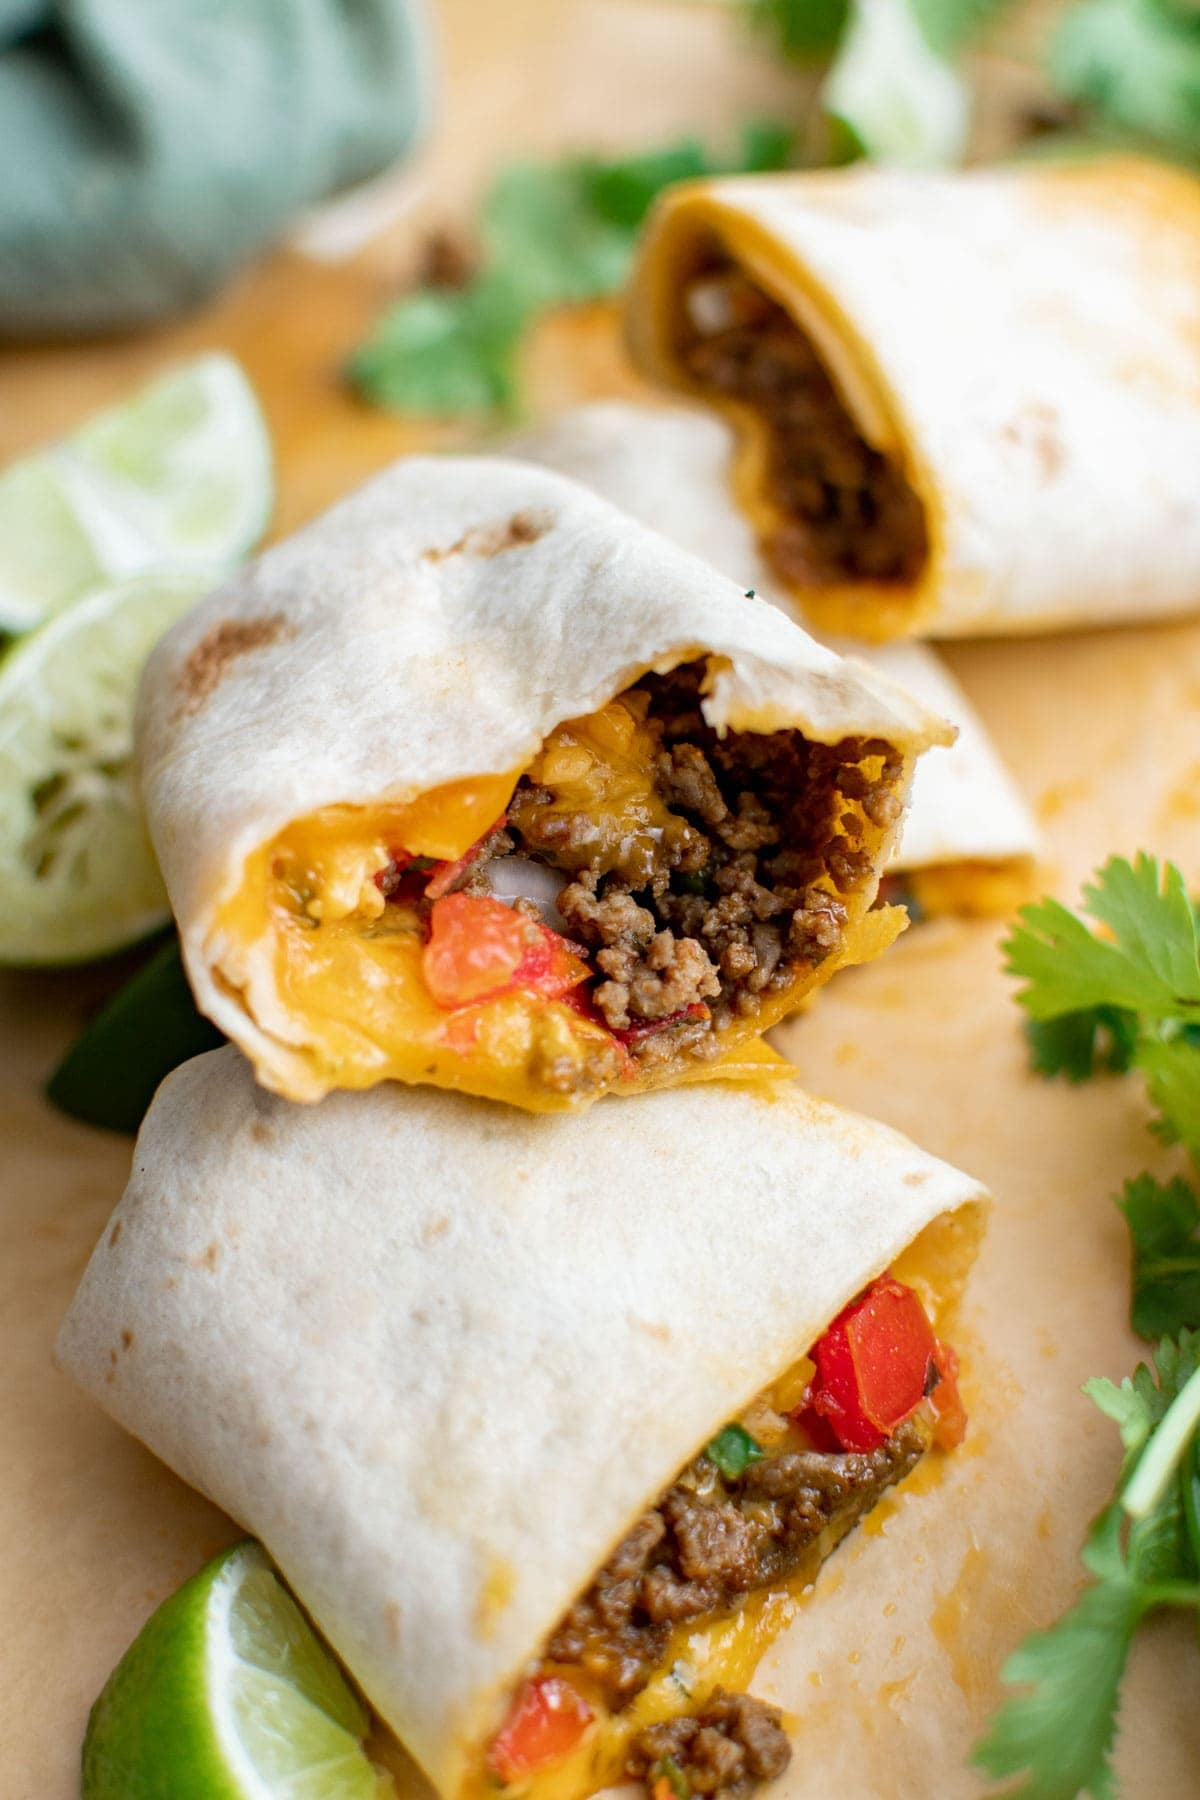 ground beef, cheese and pico de gallow wrapped in flour tortillas